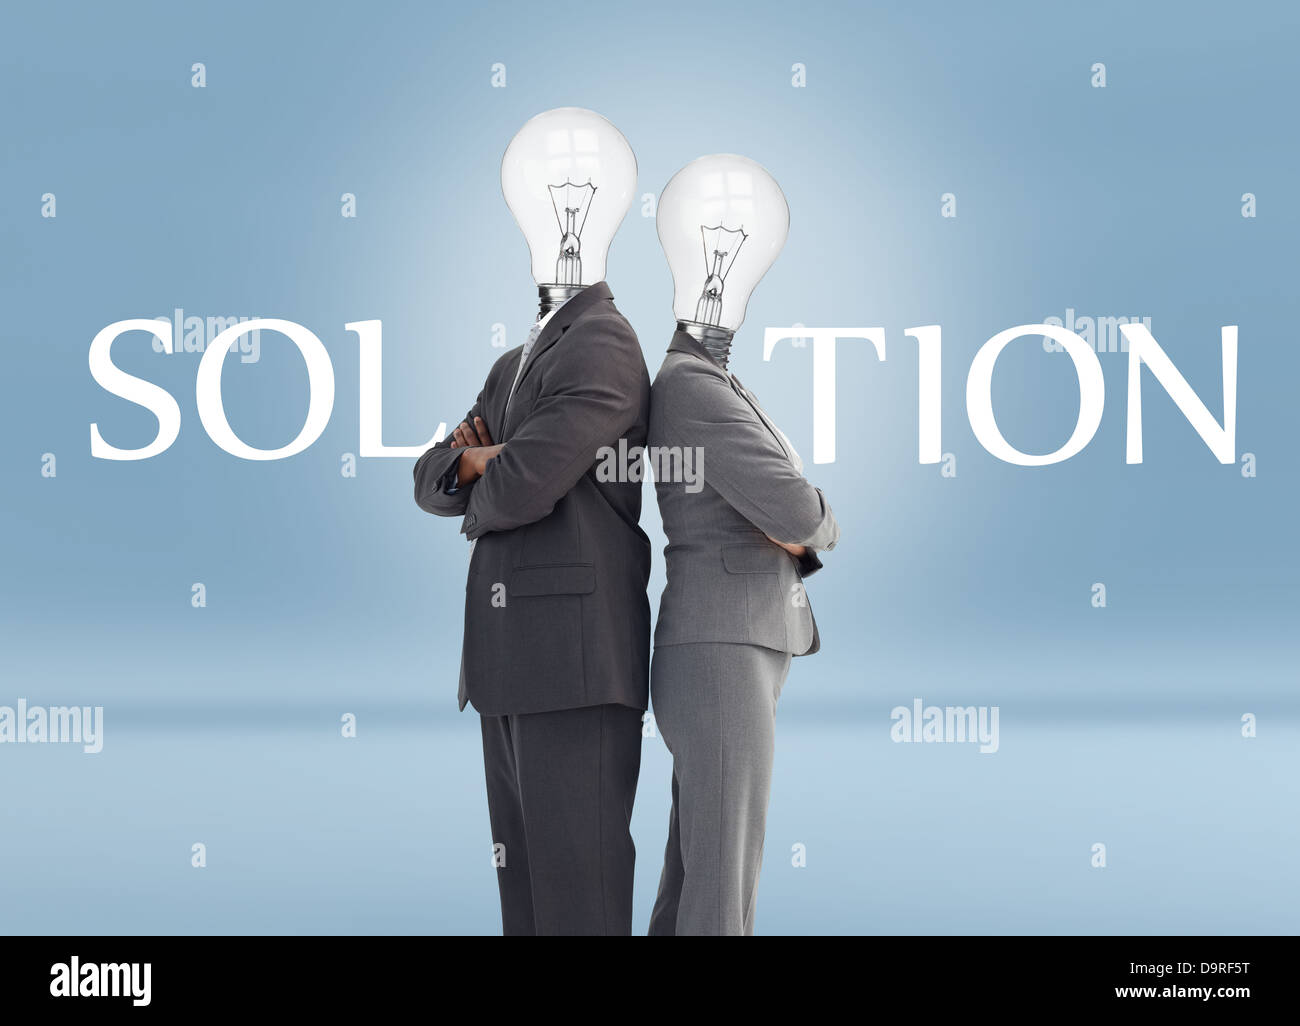 Business people with light bulbs for heads and solution text - Stock Image